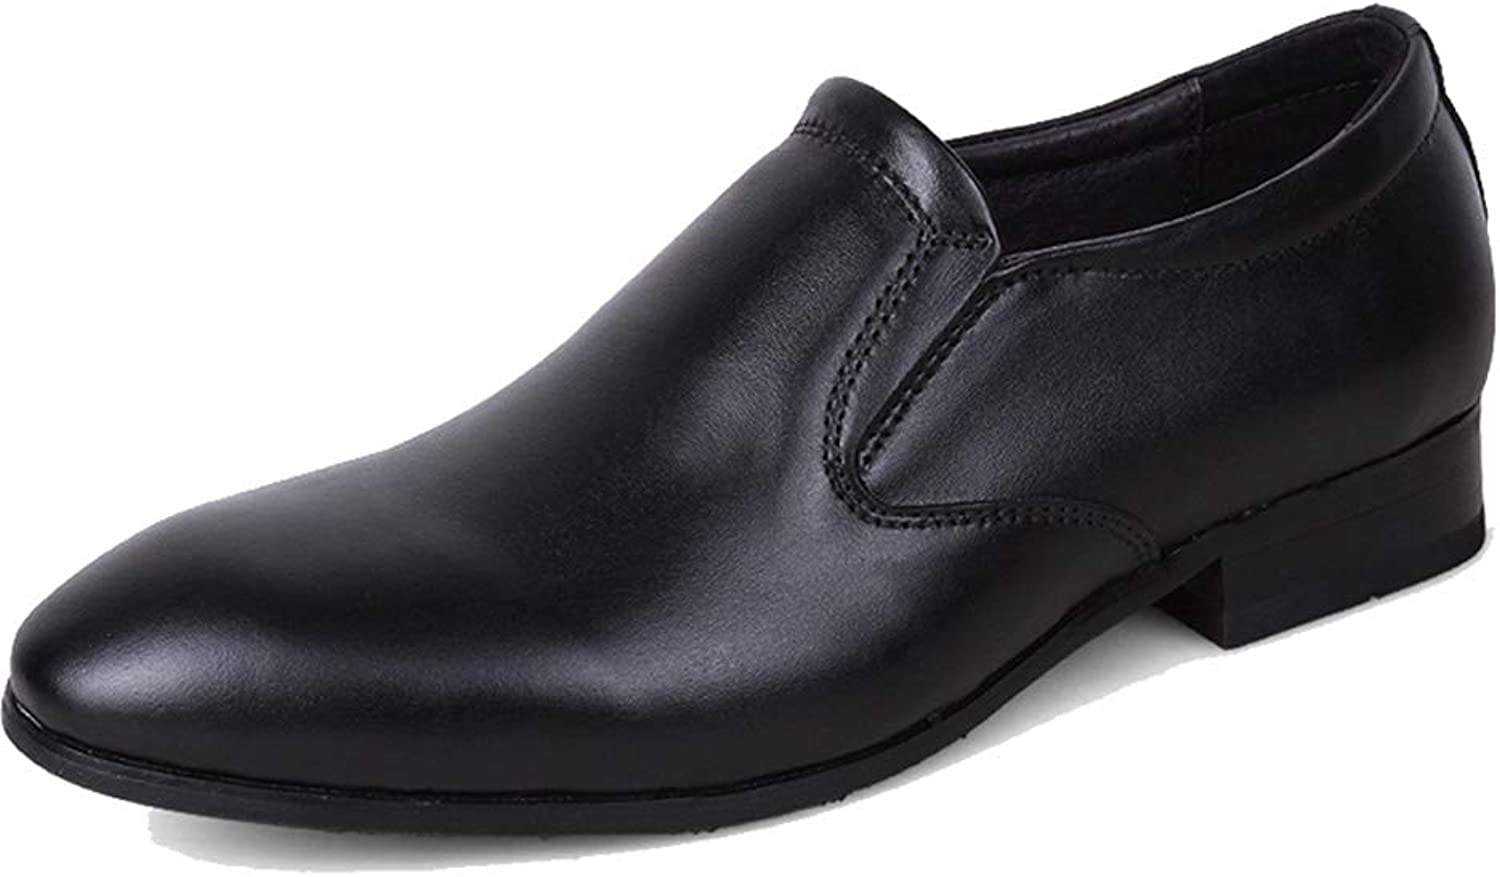 Mens Dress shoes Pointed Toe Slip-On Leather Oxford Office Business Wedding Work shoes